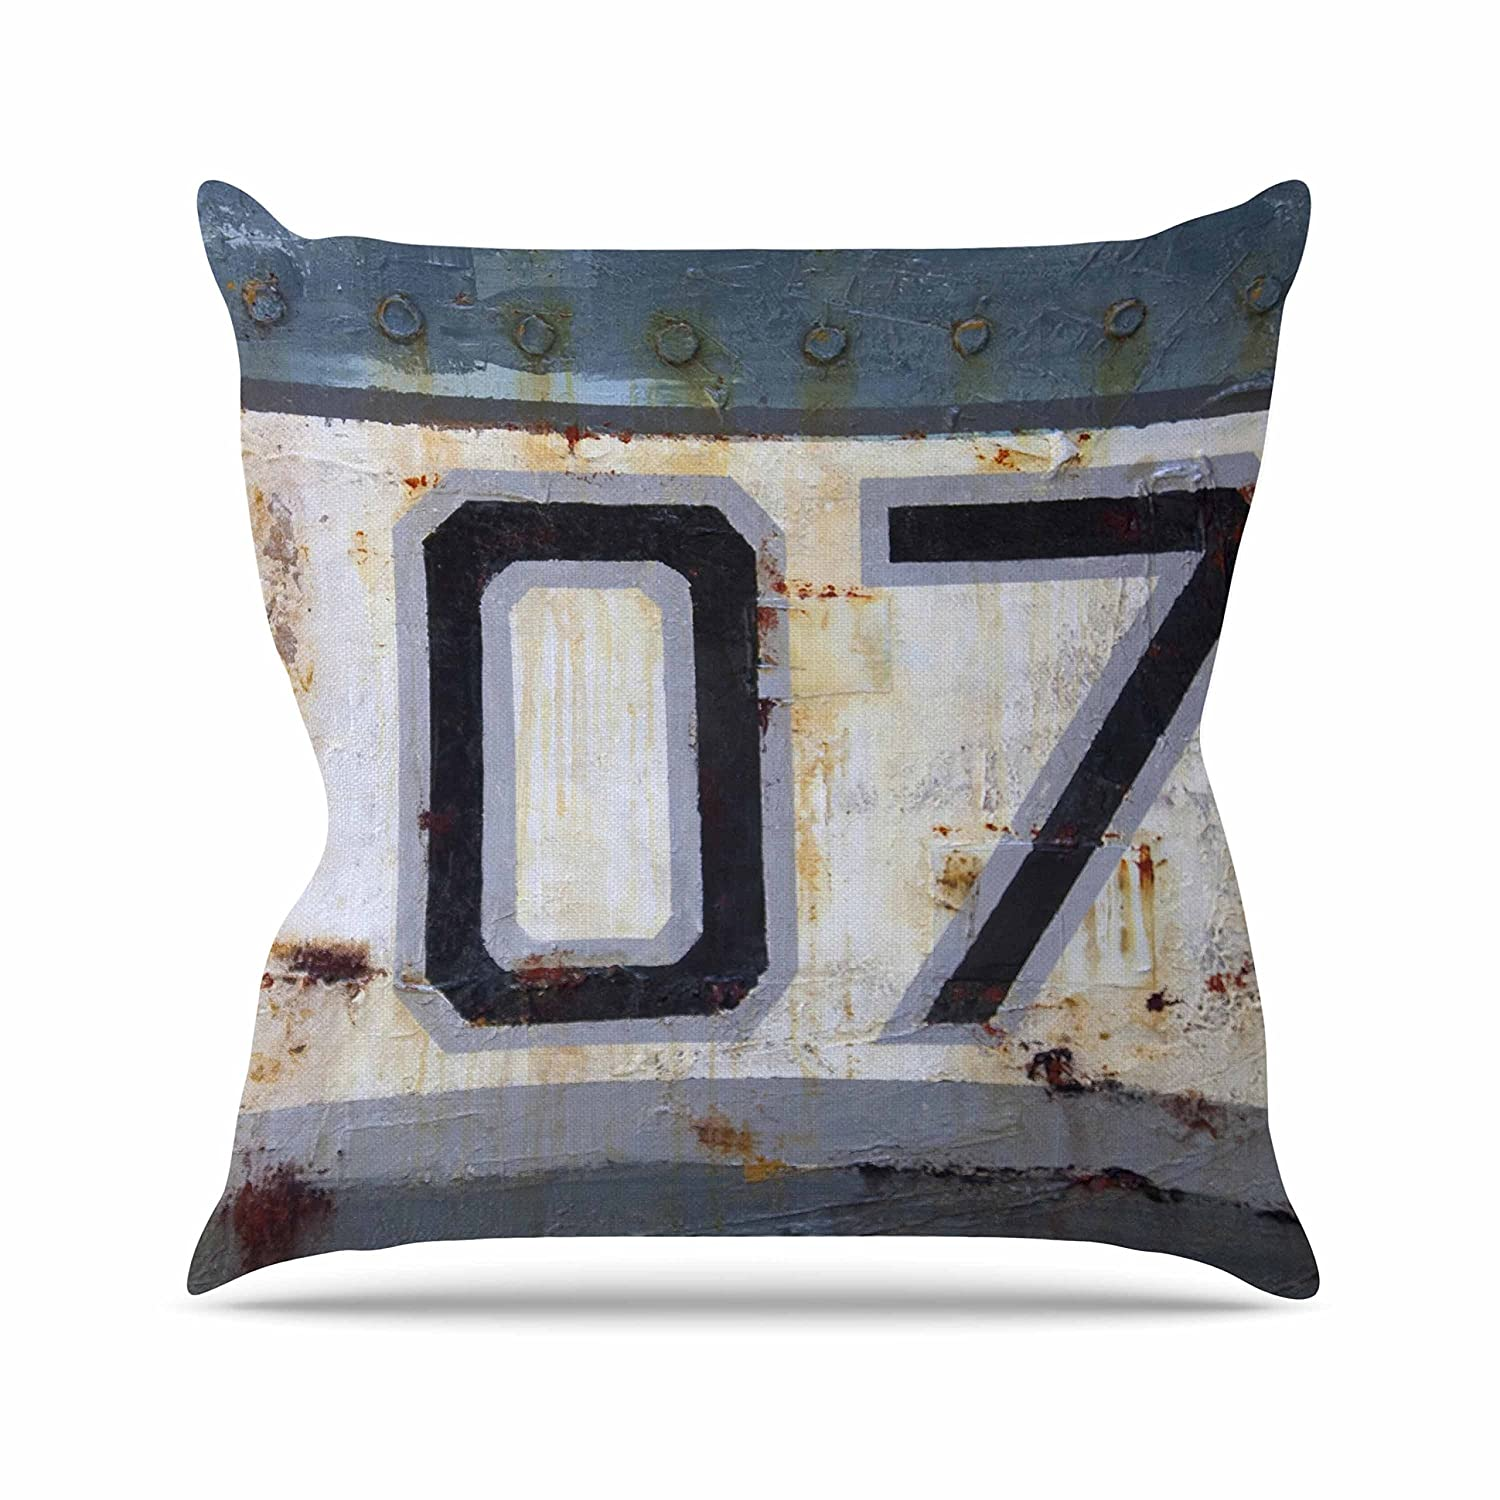 Kess InHouse Steve Dix Decommissioned Blue White Throw Pillow 26 by 26